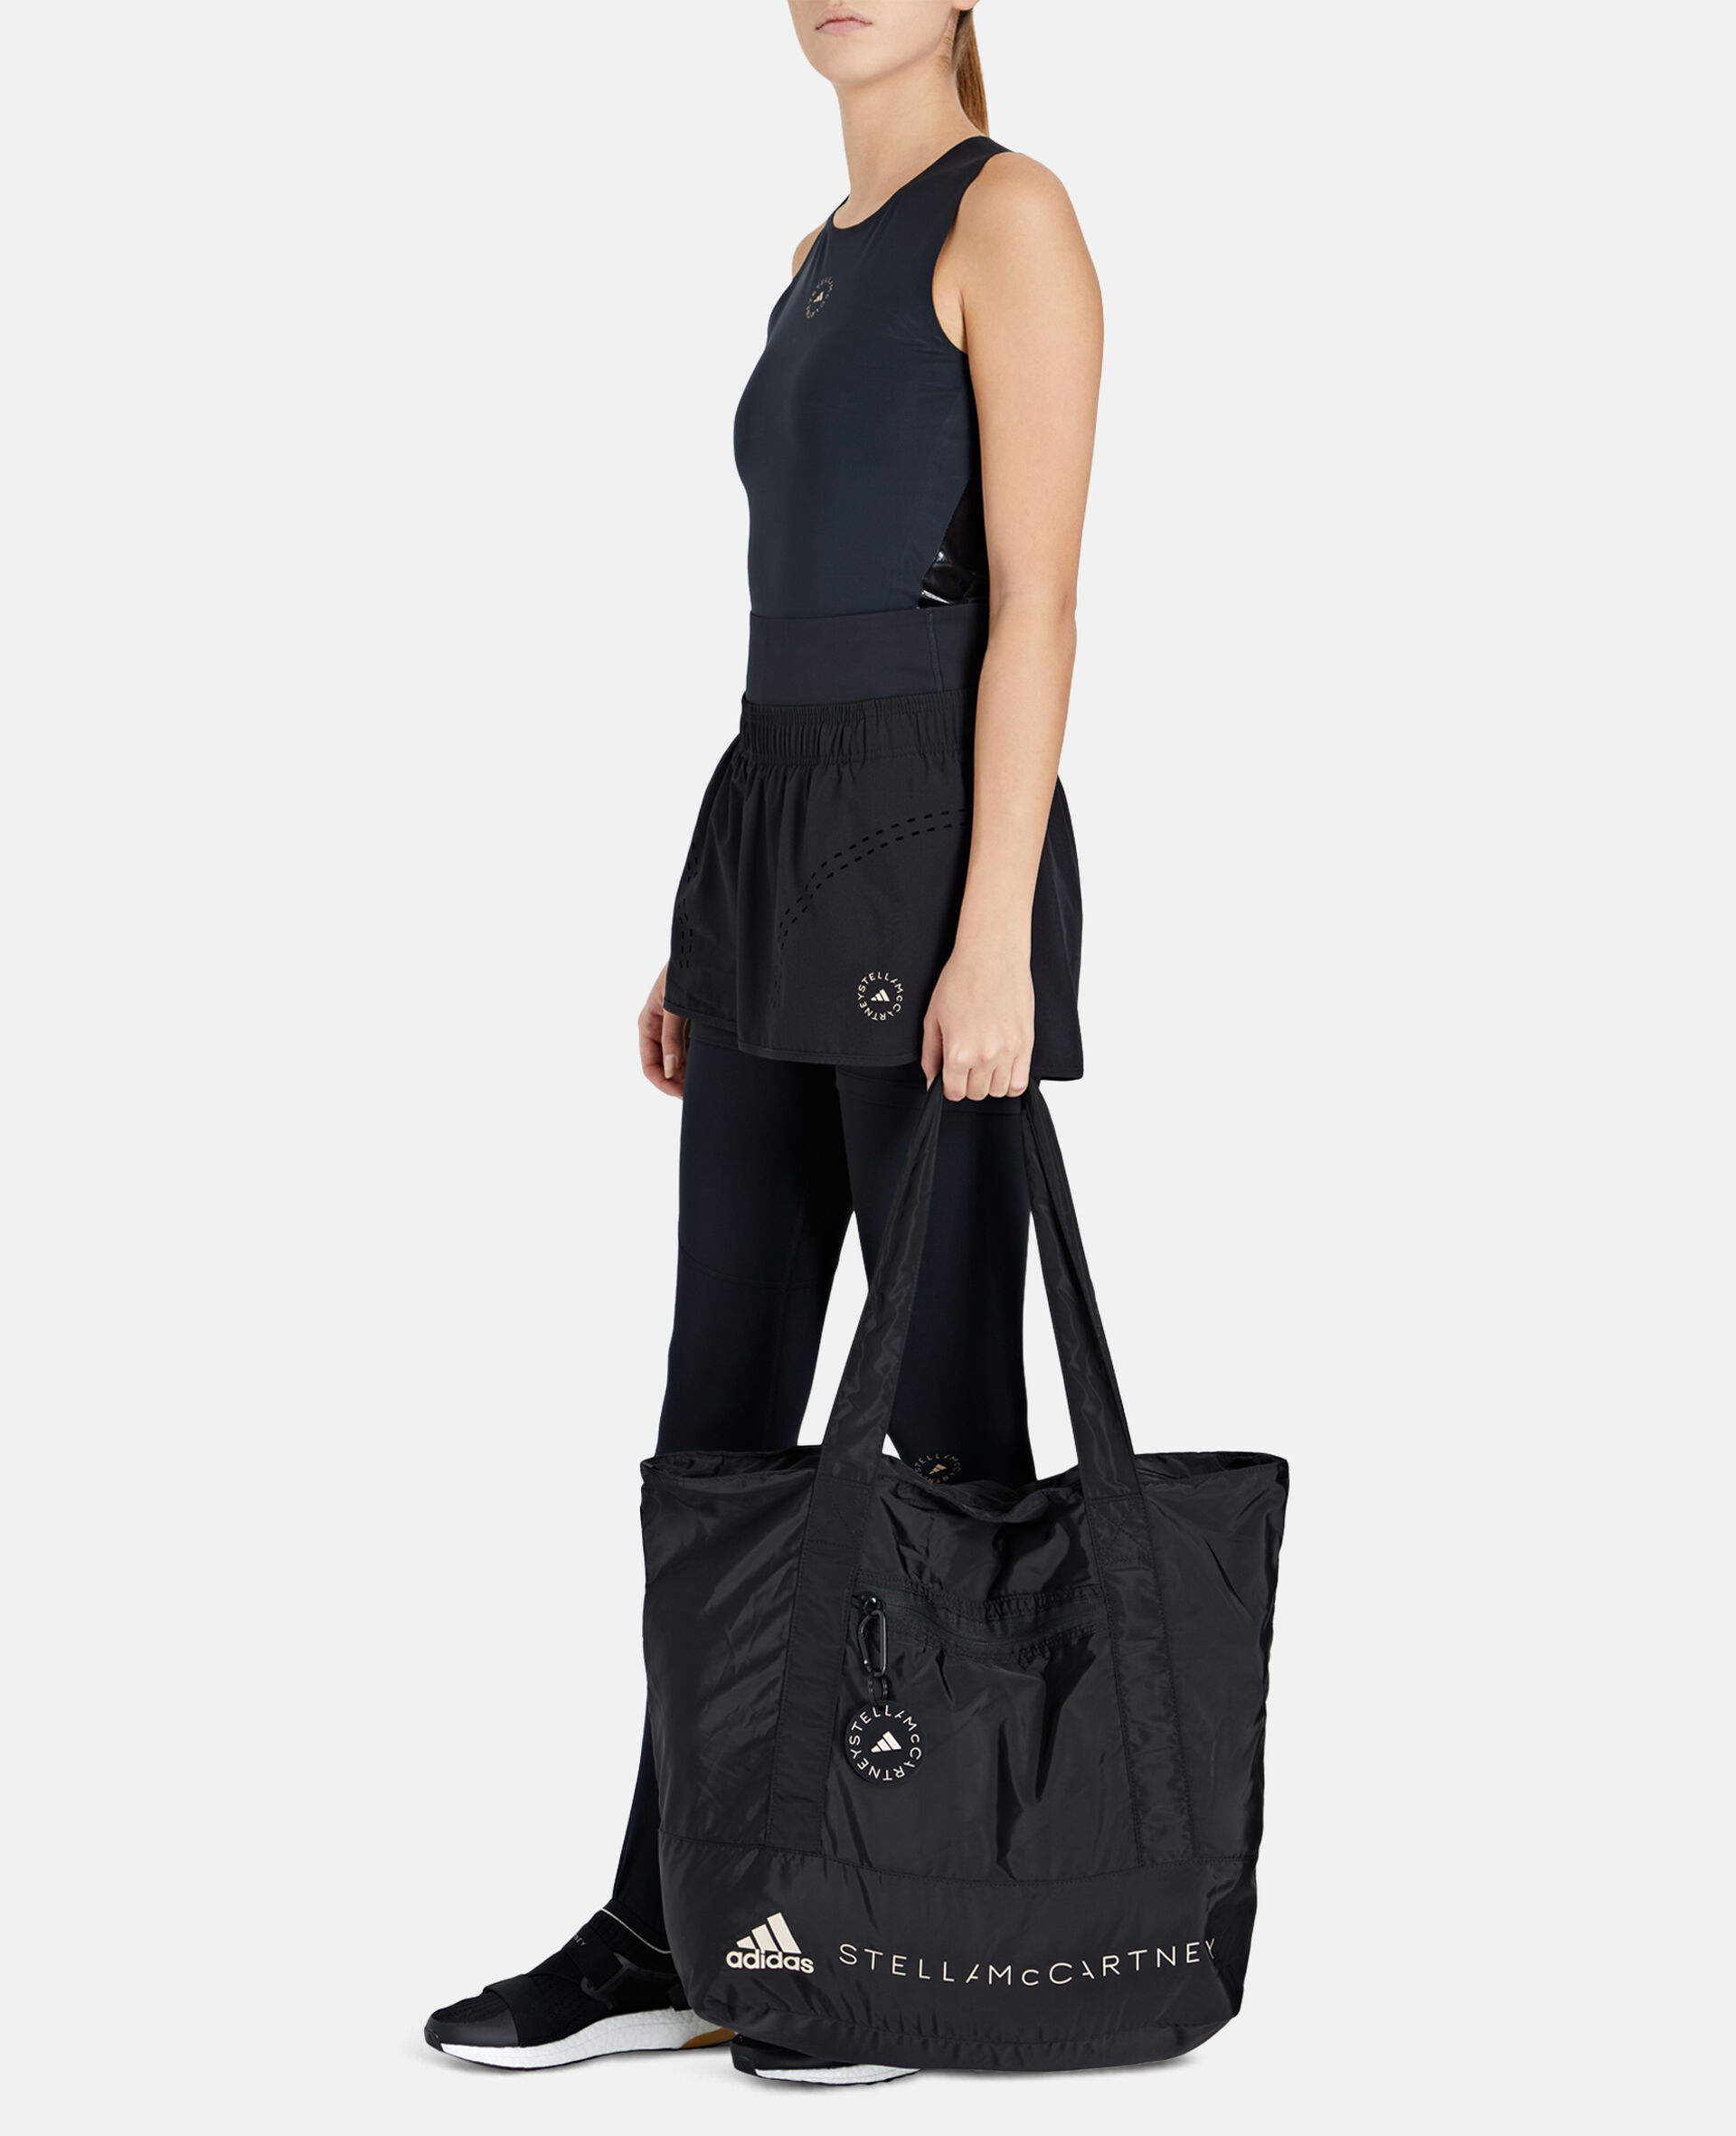 Black Printed Tote Bag -Black-large image number 3